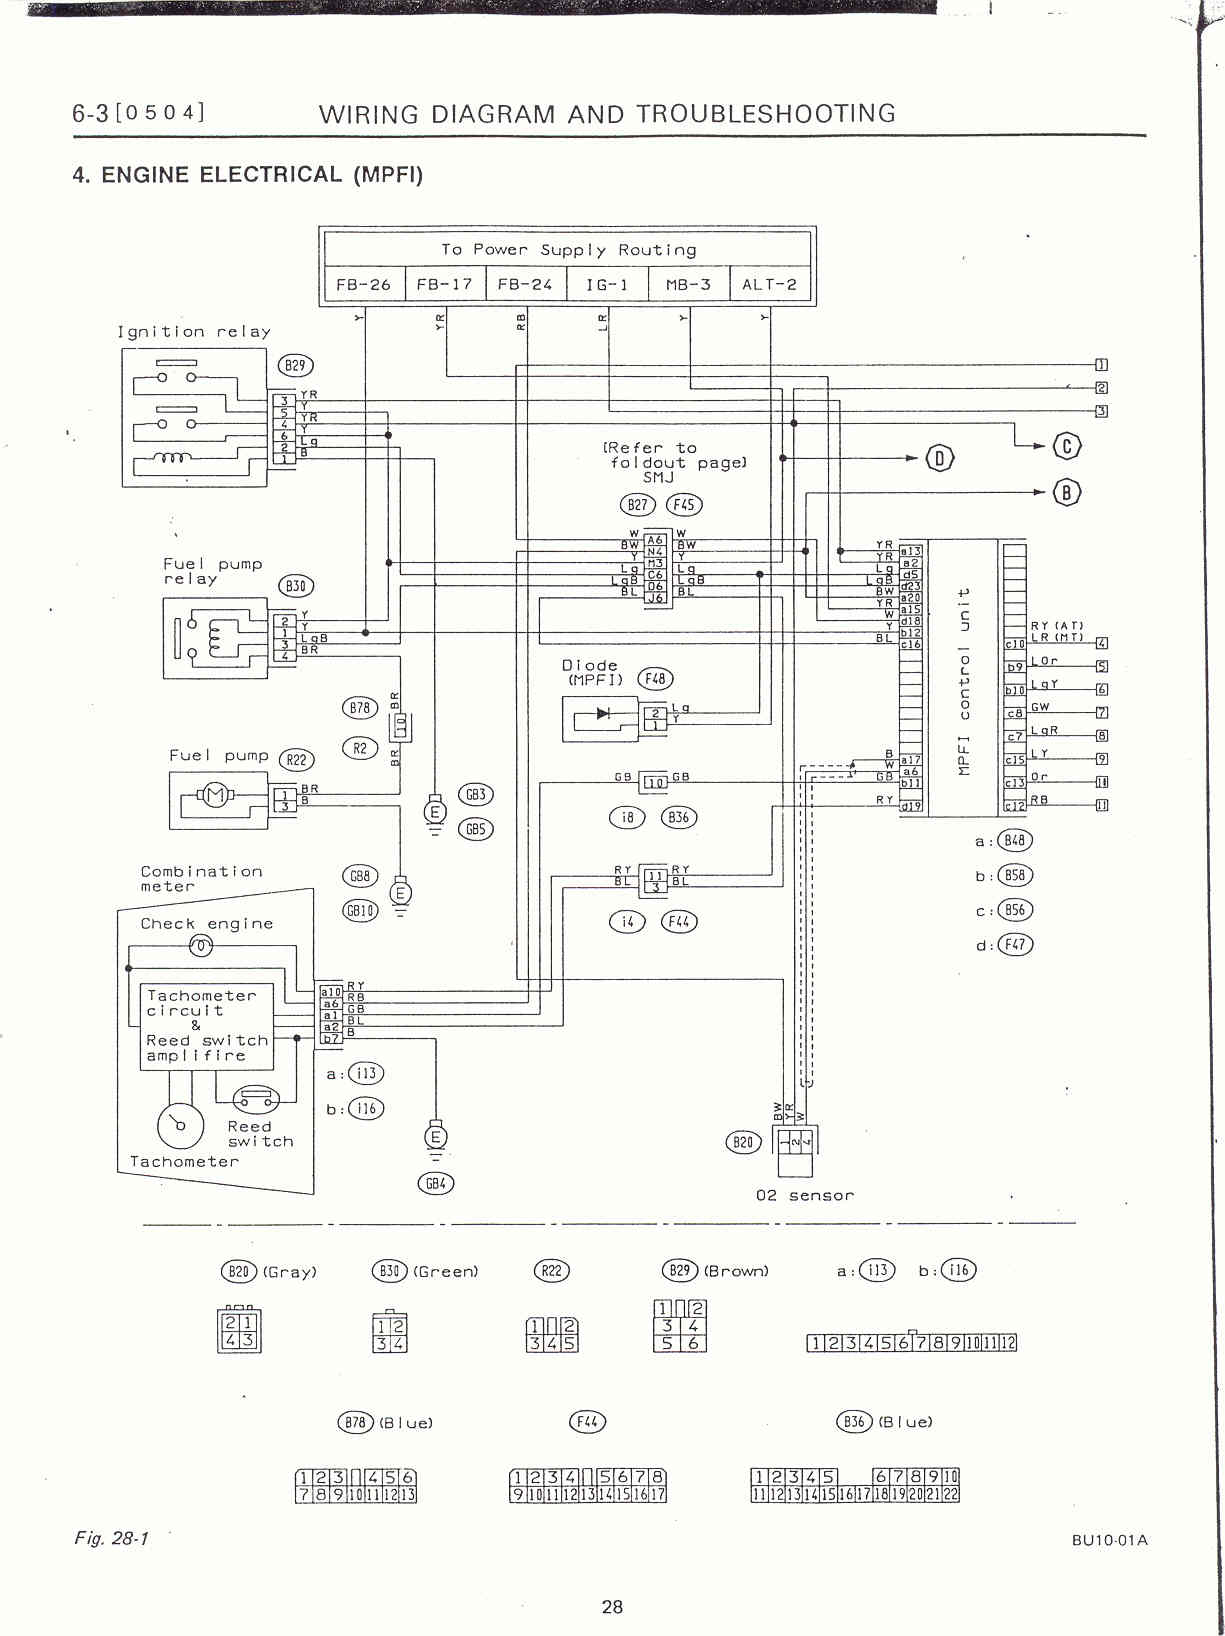 fuse box diagram subaru impreza with 93 Subaru Legacy Wiring Diagram on Honda Accord Lighter Wiring Diagram moreover Windshield Washer Pump Location Gmc Envoy furthermore Wiring Diagram 2010 Chevy Malibu furthermore 2002 Gmc Envoy O2 Sensor Location moreover Ignition Relay Switch Location Subaru Outback.